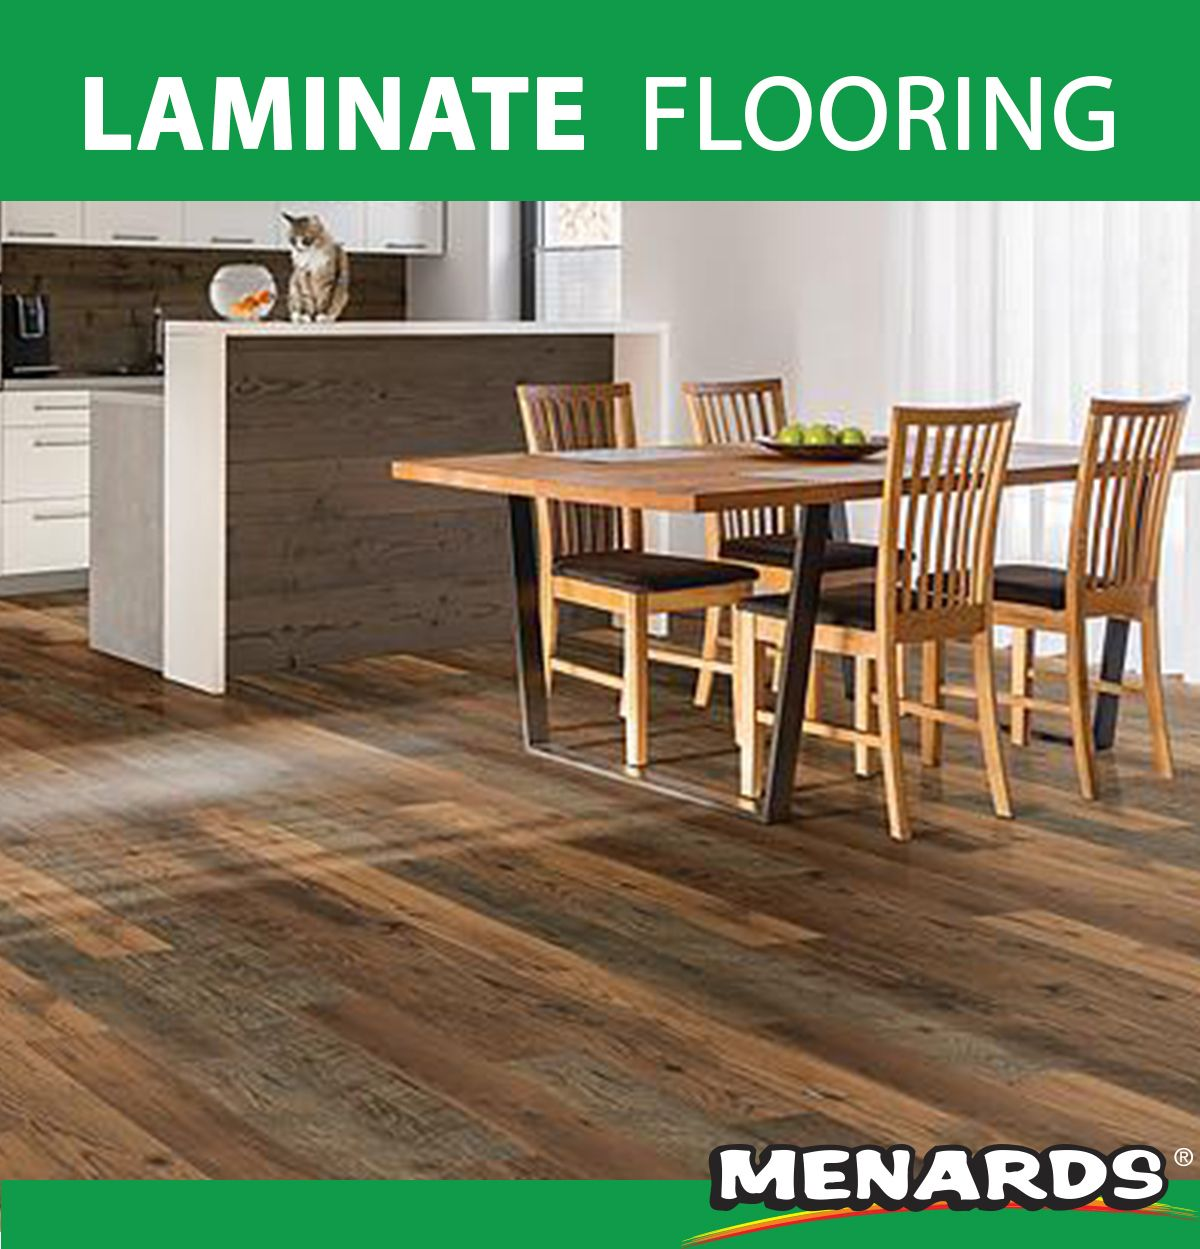 Mohawk's PerfectSeal laminate flooring uses an innovative